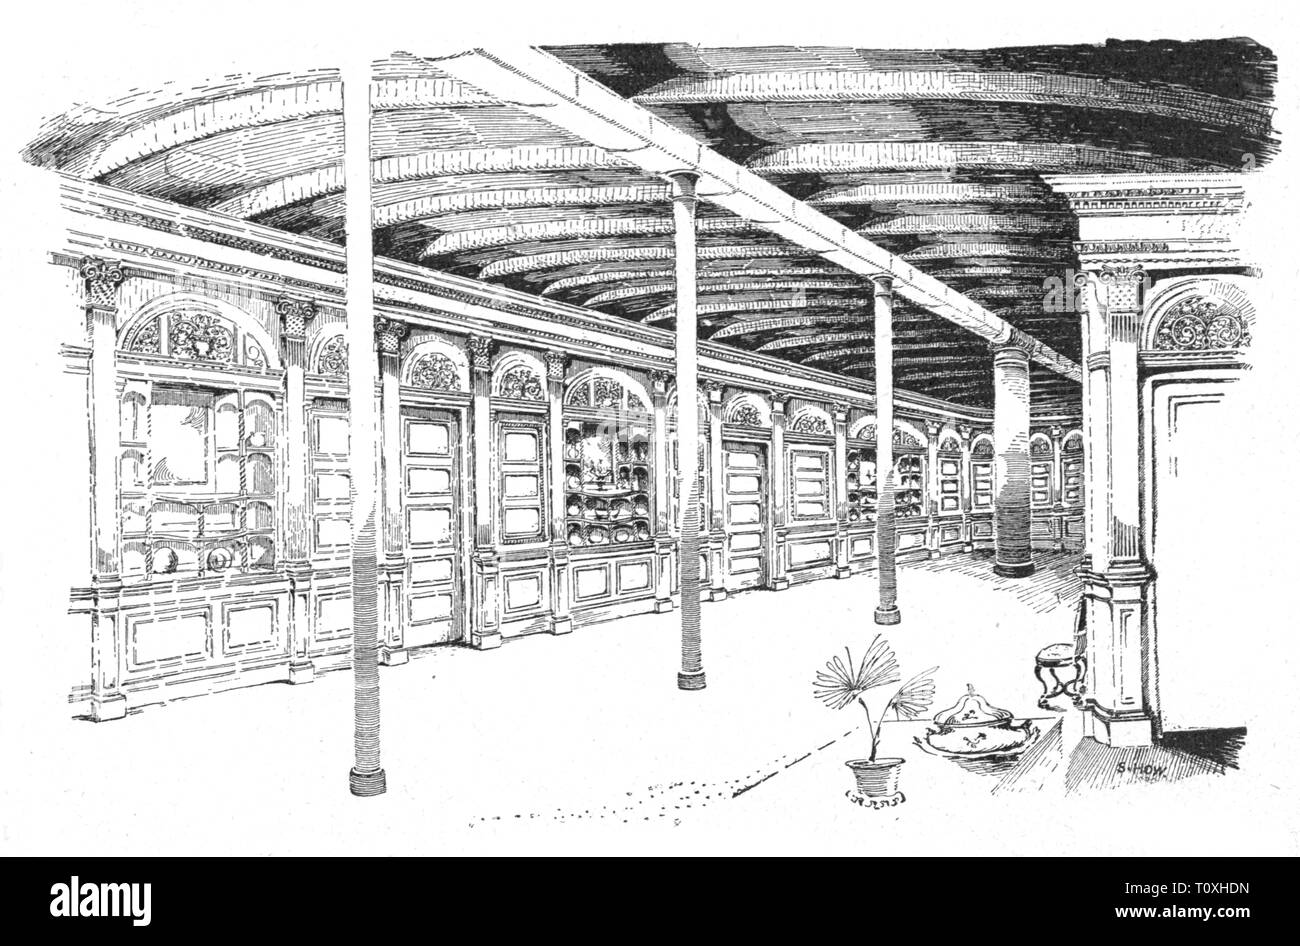 transport / transportation, navigation, steamship, inside, passenger ship 'Puritan' of the Fall River Line, detail, gambling room, wood engraving, circa 1890, Additional-Rights-Clearance-Info-Not-Available - Stock Image